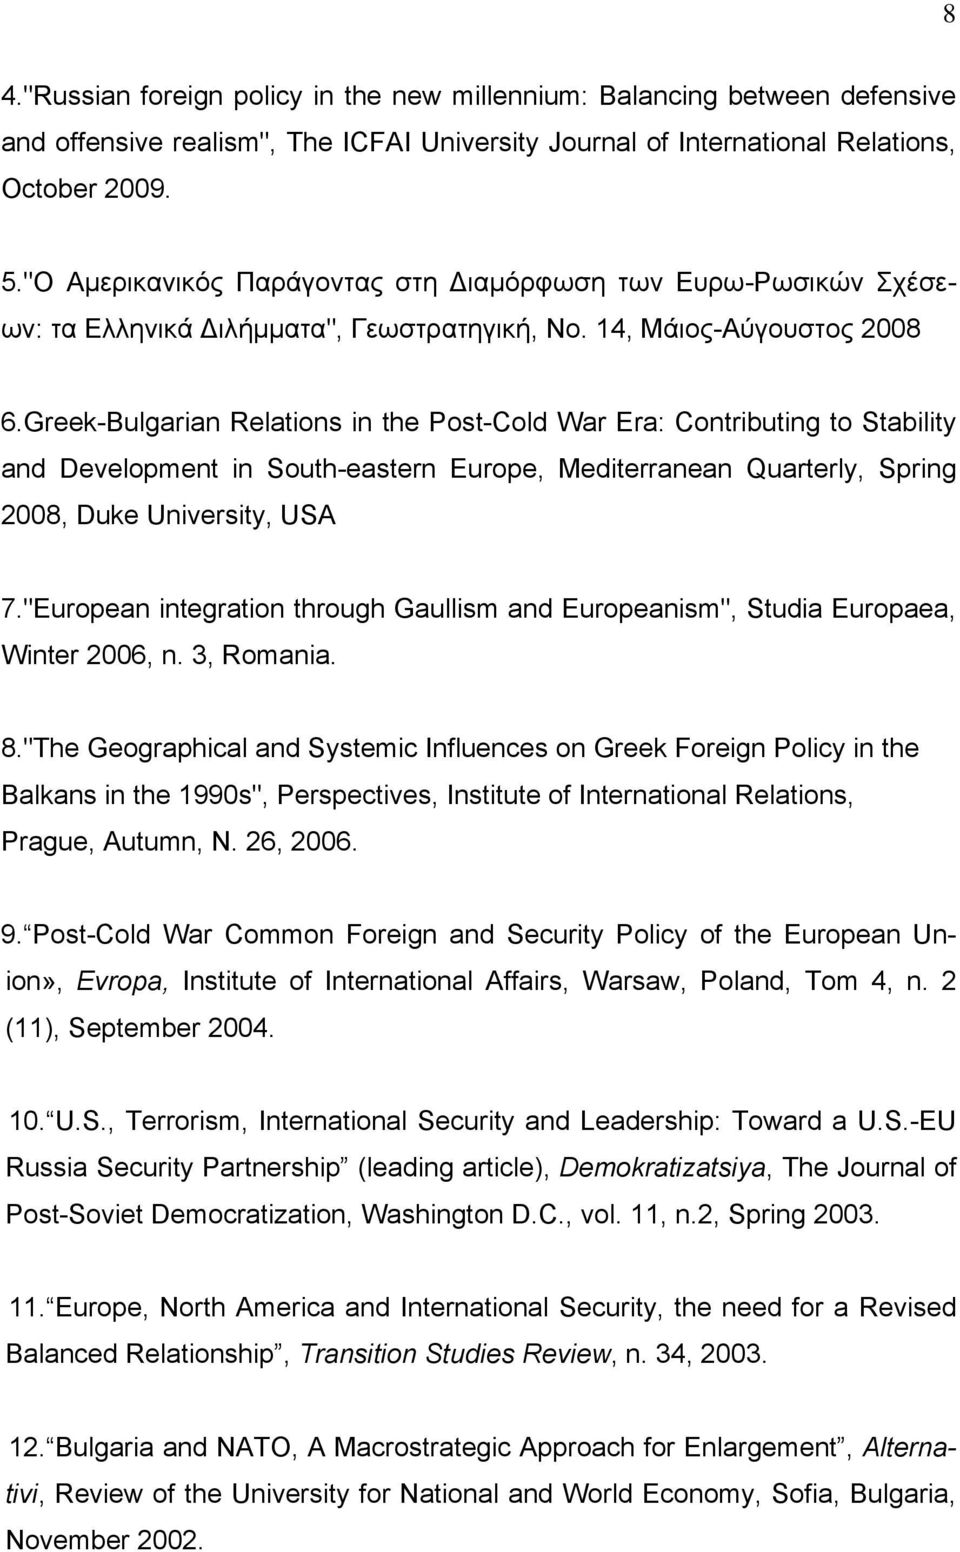 Greek-Bulgarian Relations in the Post-Cold War Era: Contributing to Stability and Development in South-eastern Europe, Mediterranean Quarterly, Spring 2008, Duke University, USA 7.